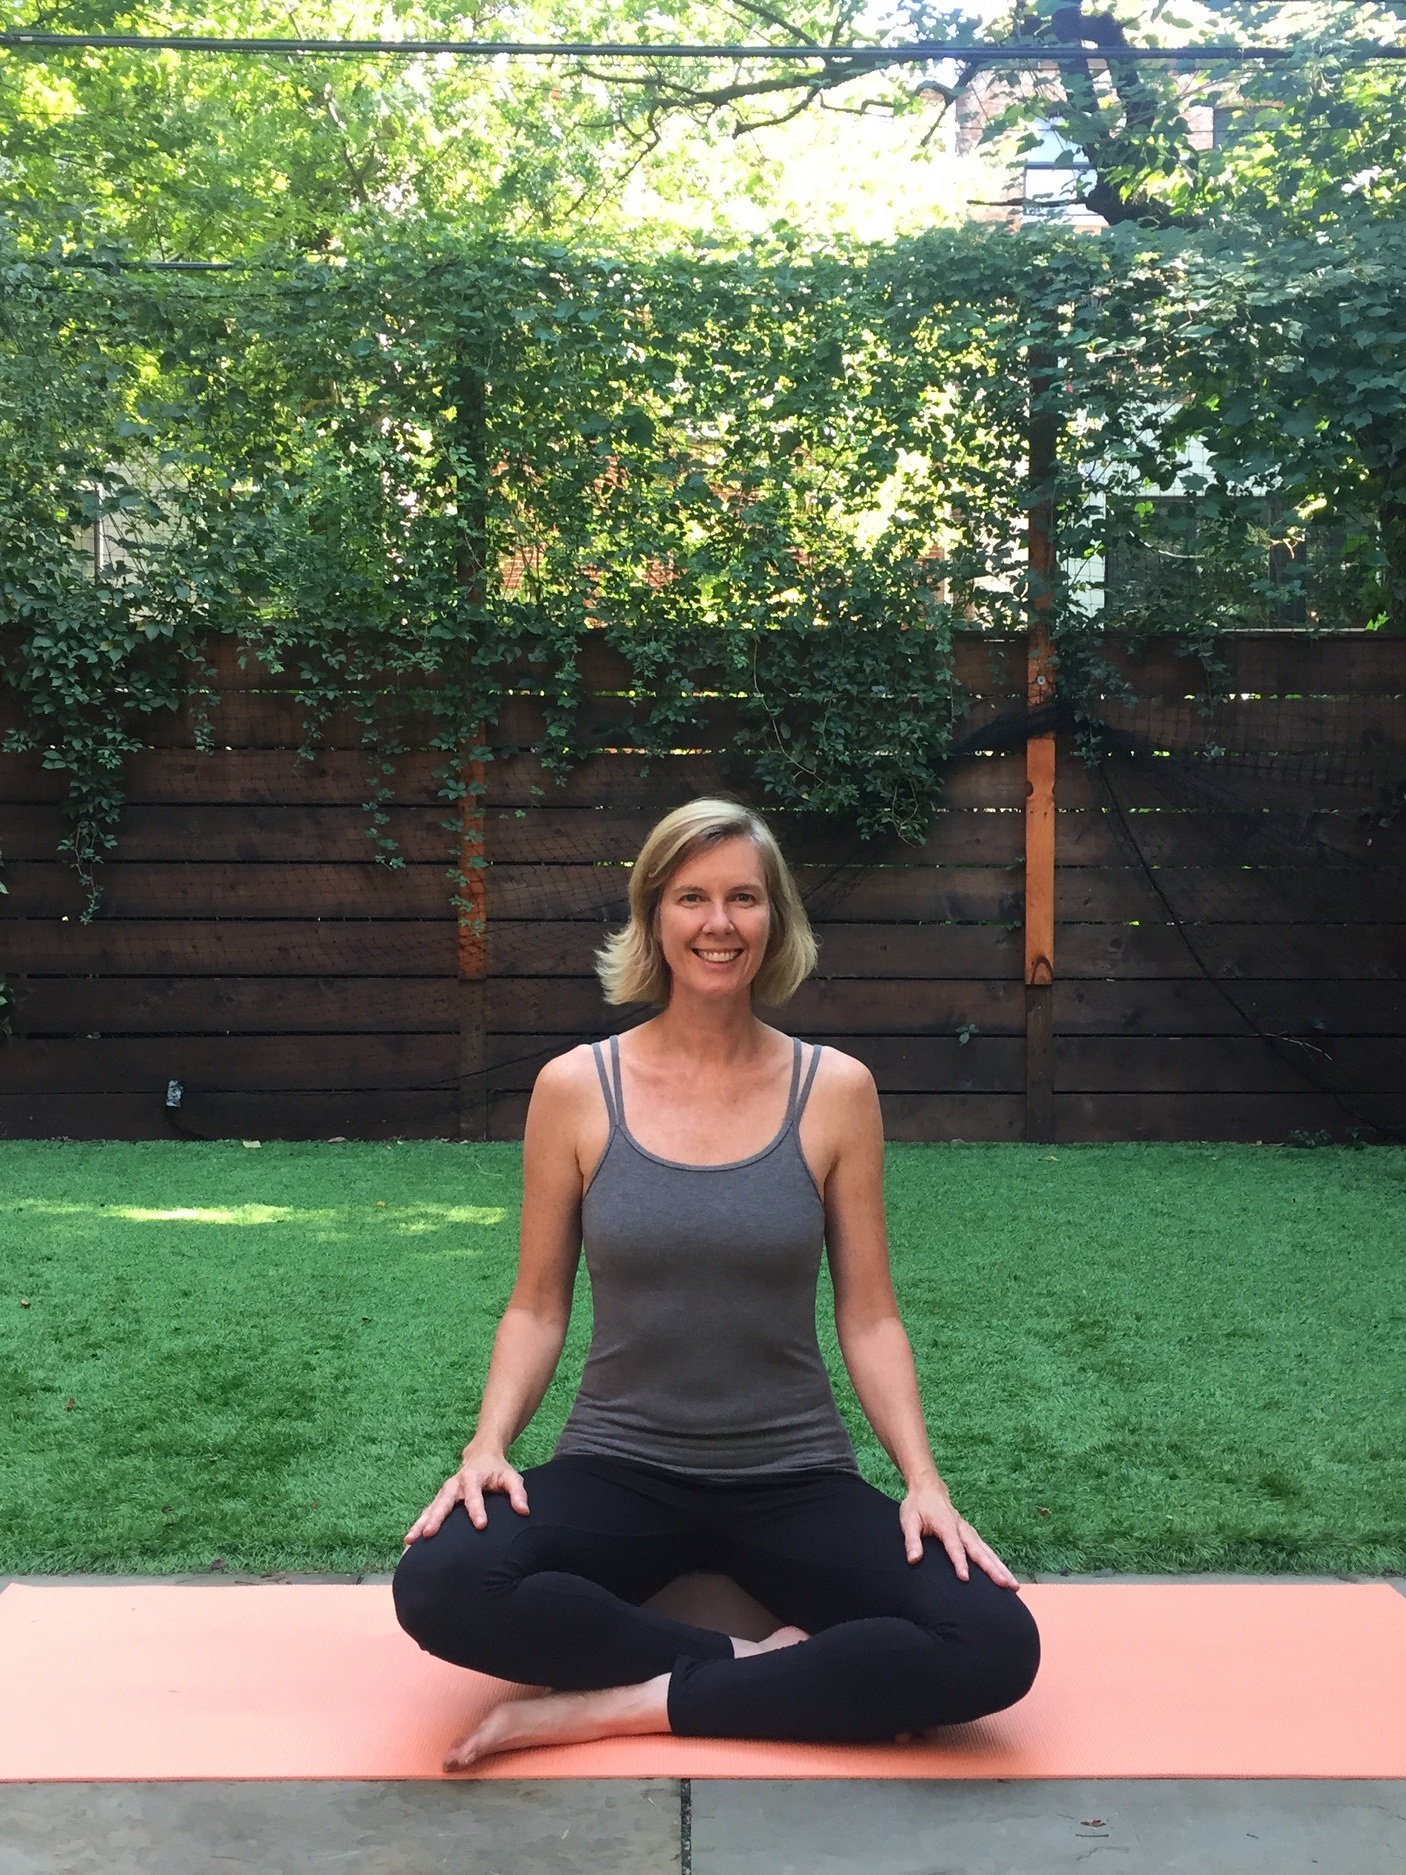 """Laura - """"I am a very self-motivated, organized person so I didn't think I needed any help to set up my private yoga business. I was totally surprised at how meaningful and important Emily Sussell's Abundant Yogi Mentoring and Mastermind group has been to me. Emily's guidance and guidelines have helped me so much. I've booked four new clients since I started participating. Emily helped me to be aware of any ways I might be selling myself short or limiting my thinking. As well, sharing this moment in my development with the twelve other people in the group and hearing about their experiences is generating much positive, supportive energy—so much better than going it alone"""". - Laura Teusink - Featured in Forbes!"""